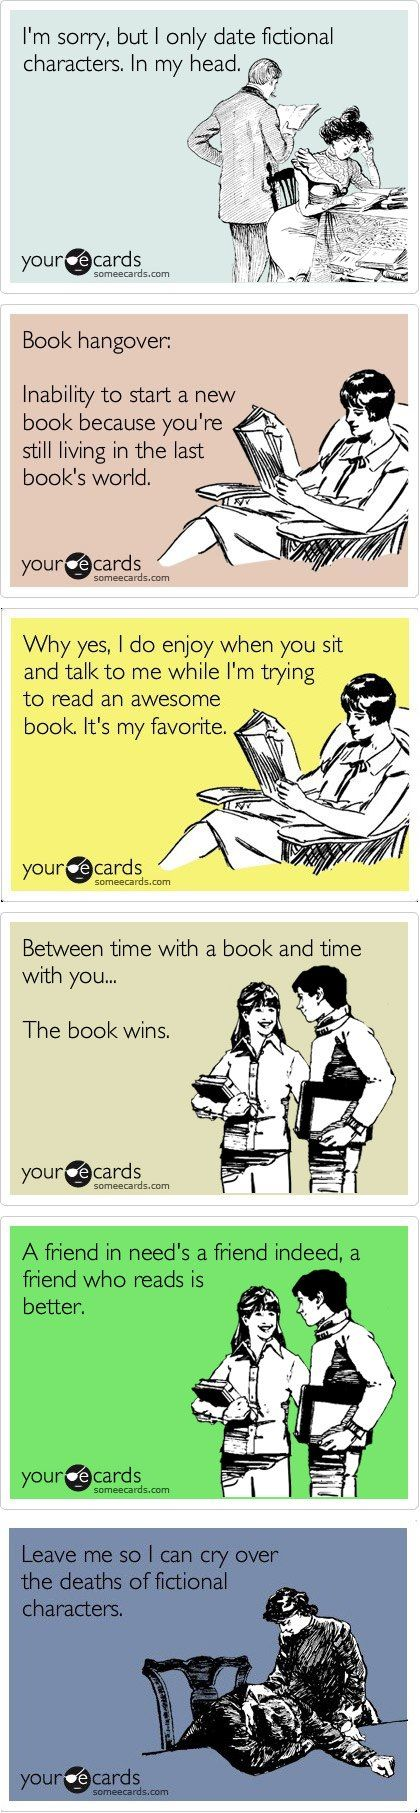 e-cards for book lovers. if you're like me, these will all resonate with you hahah